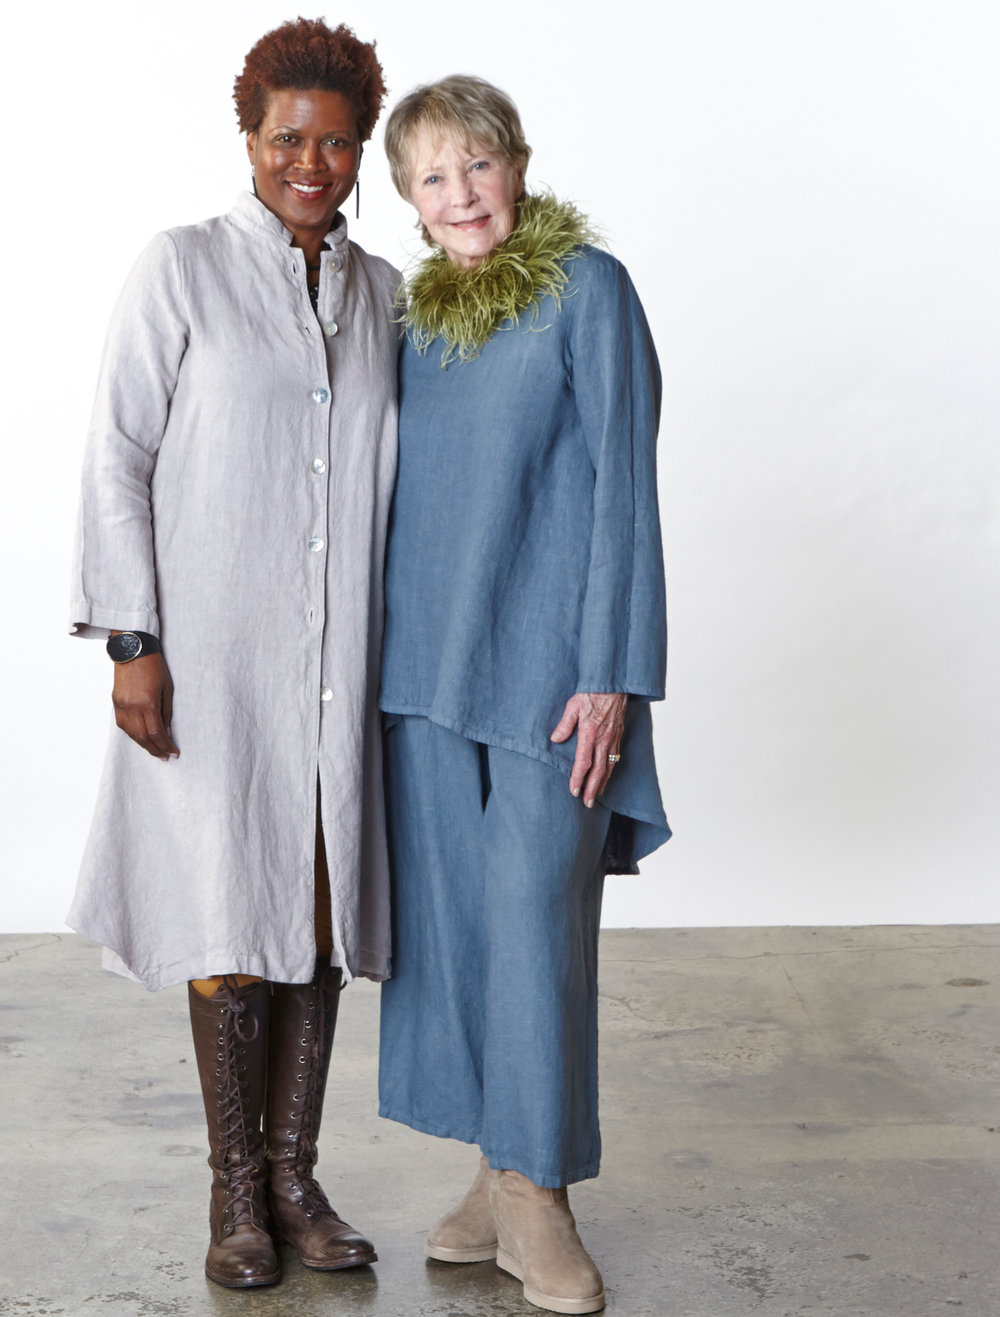 Llewellyn Jacket in Daikon, Leo Tunic, Flood Pant in Estuary Heavy Linen, Legging in Camel Modal Ponti